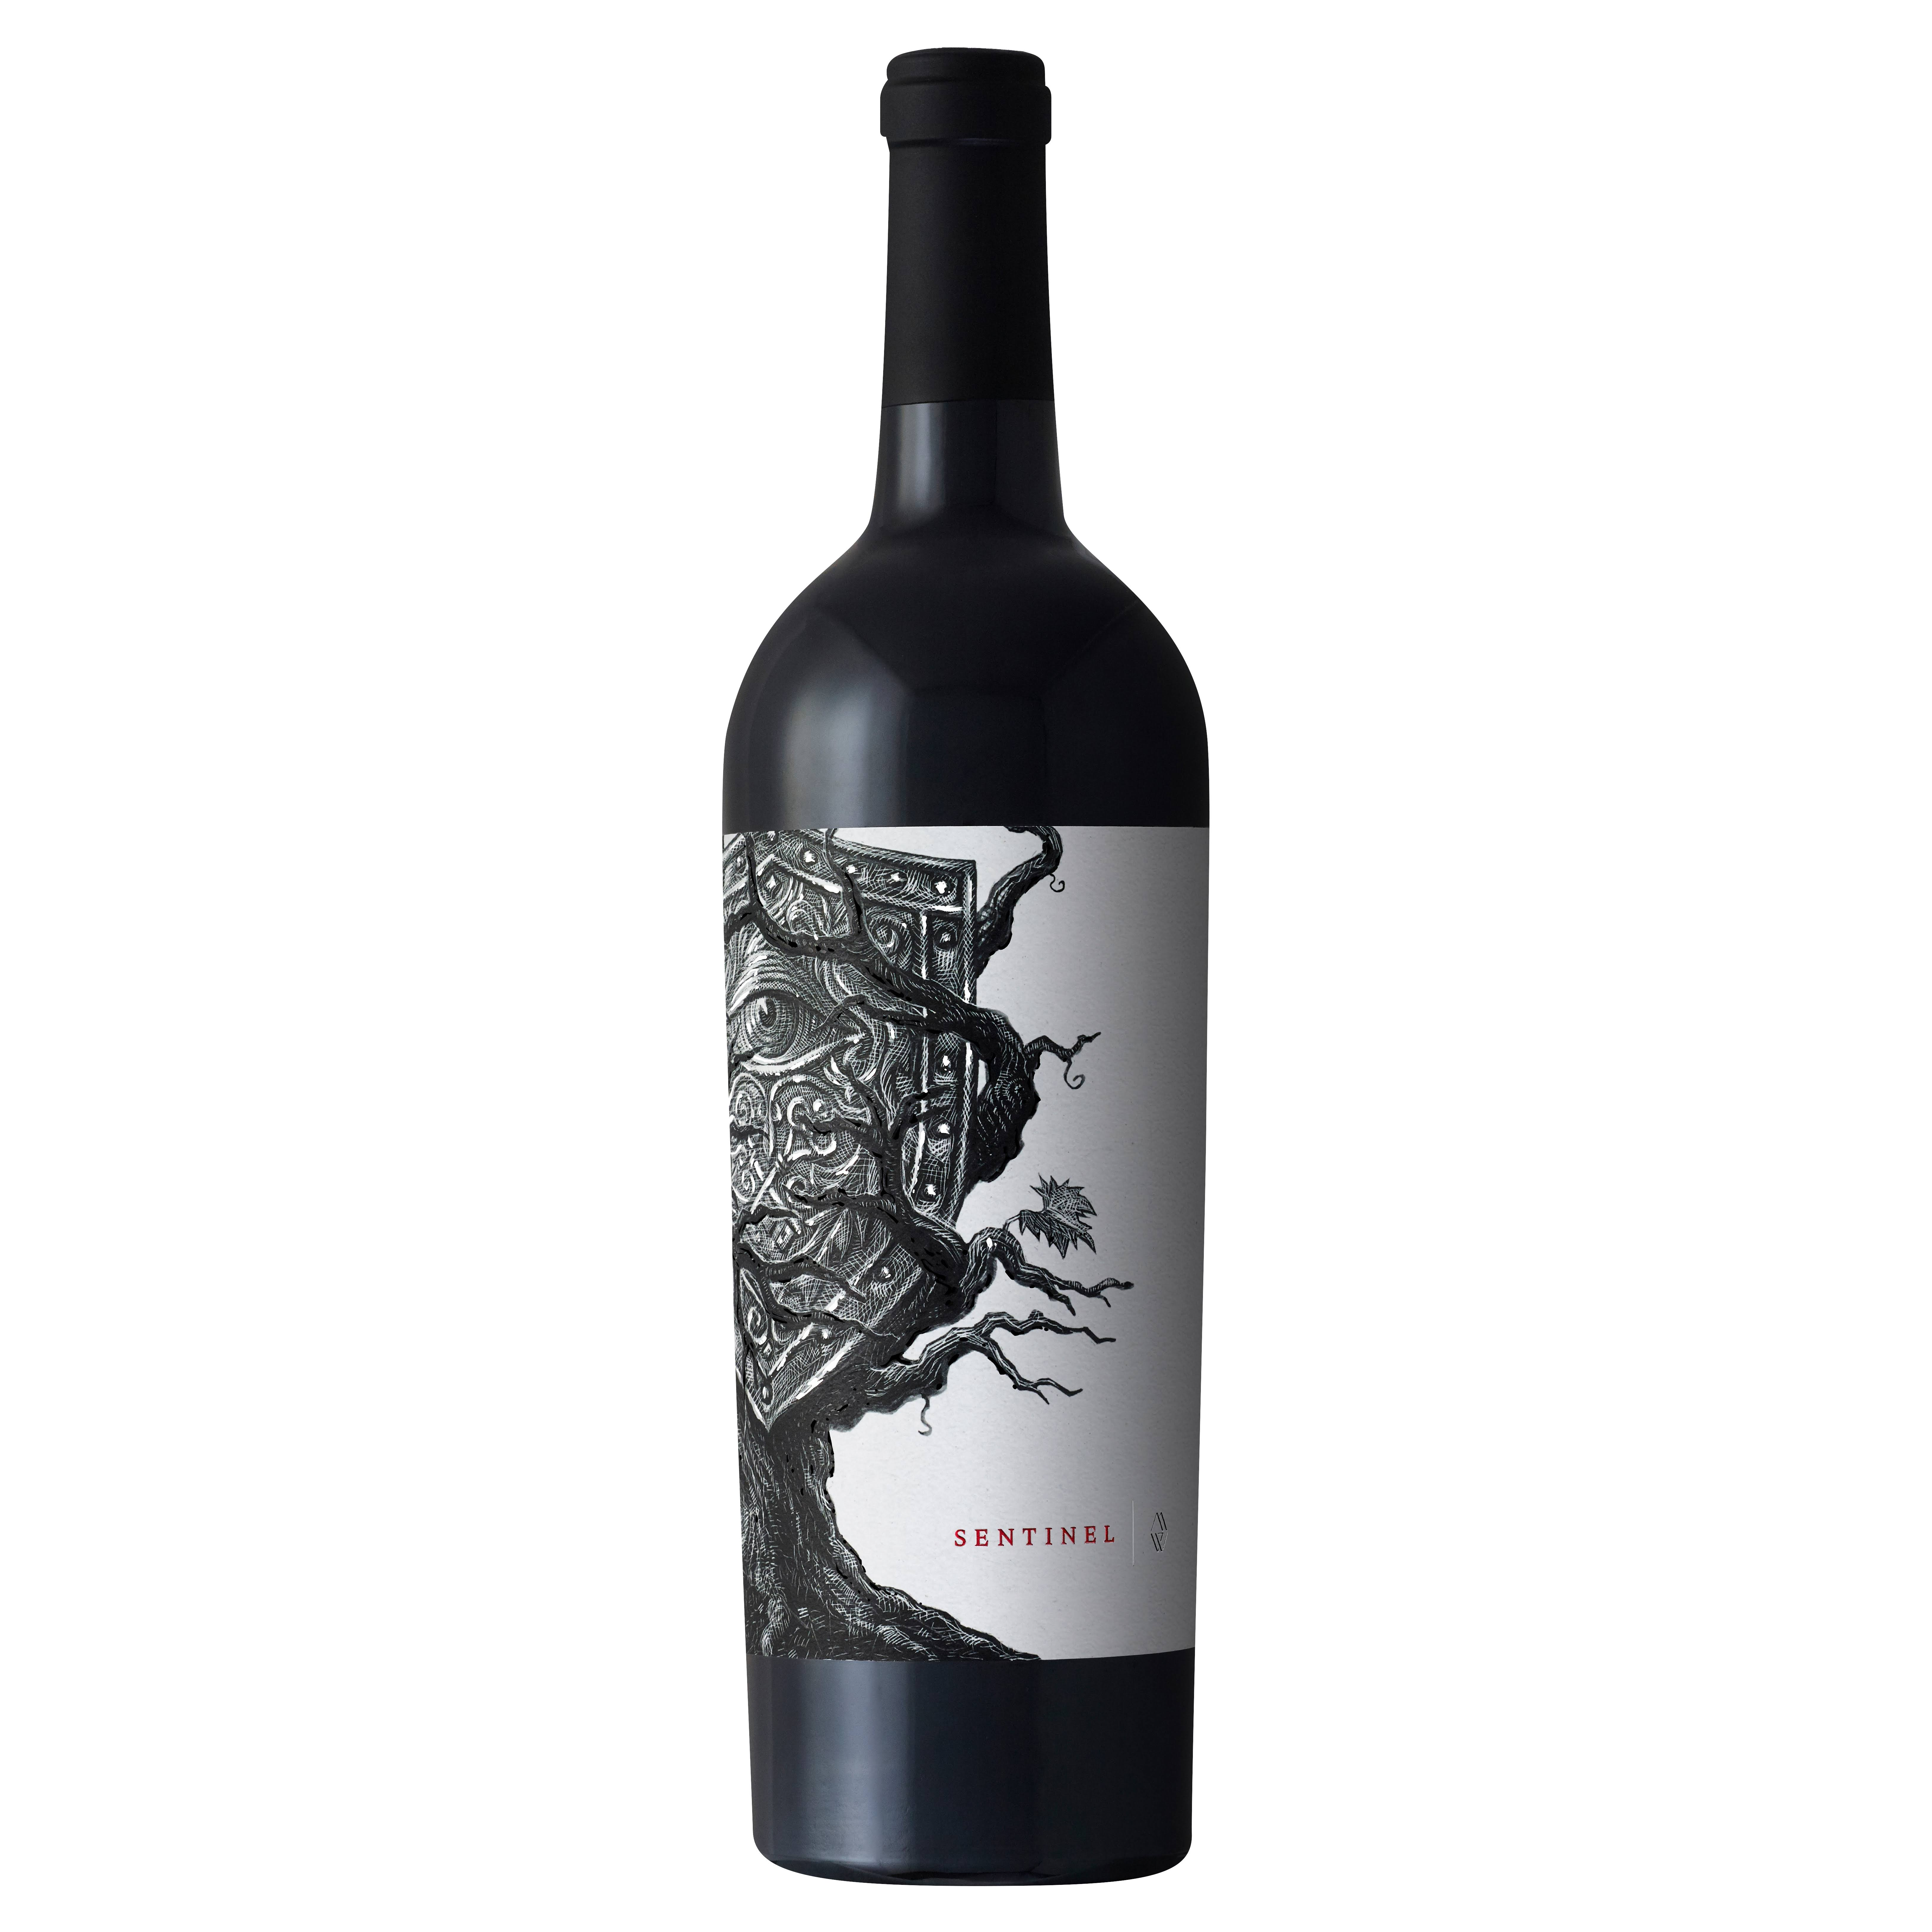 Mount Peak Winery Red Wine, Sentinel, Red Blend, California - 750 ml